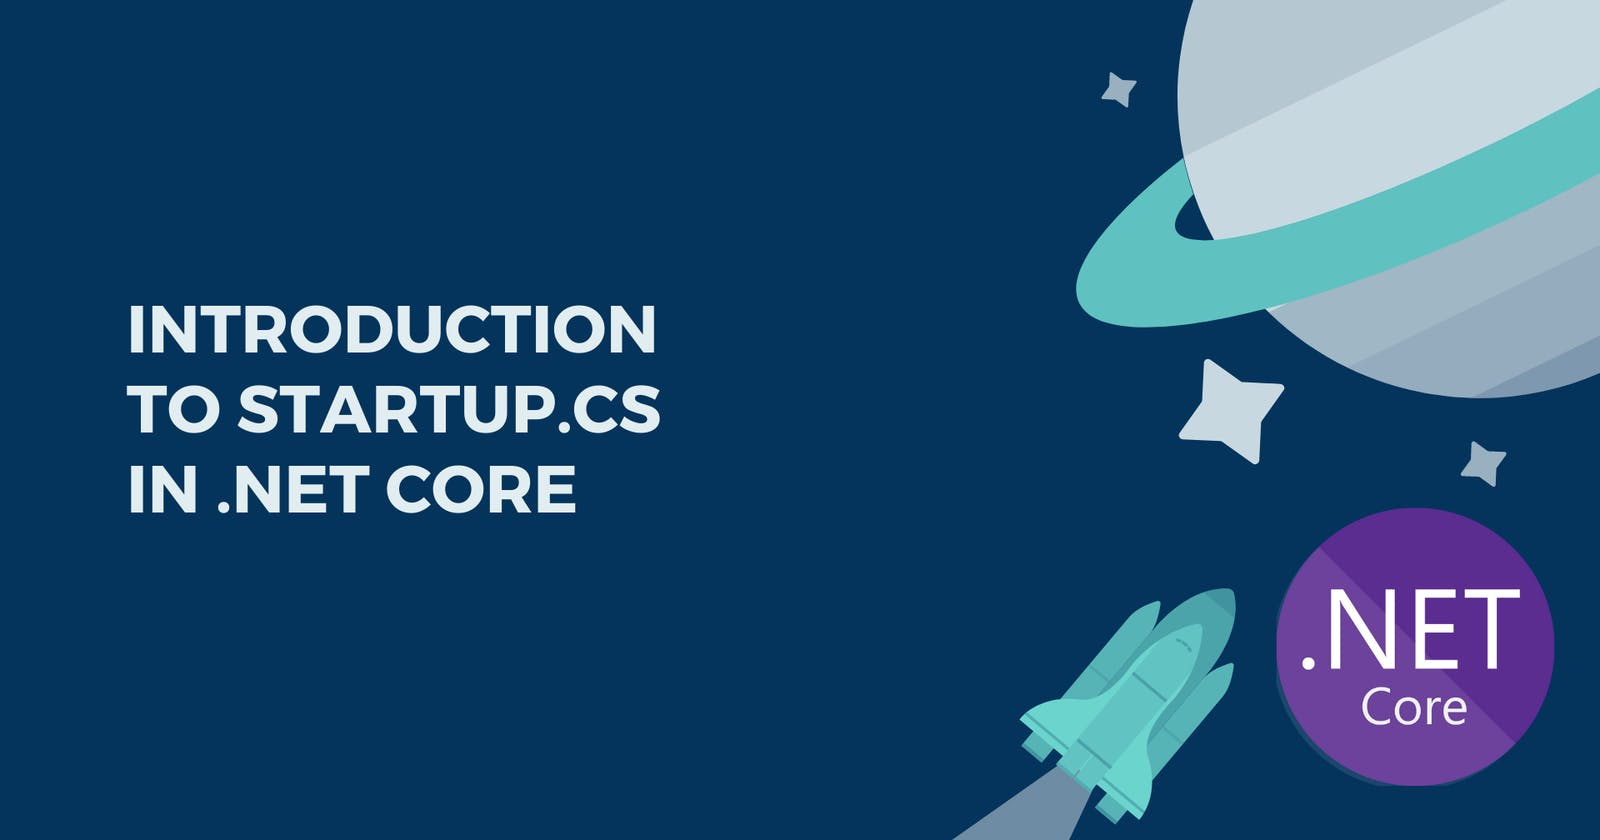 Introduction to Startup.cs in .NET Core